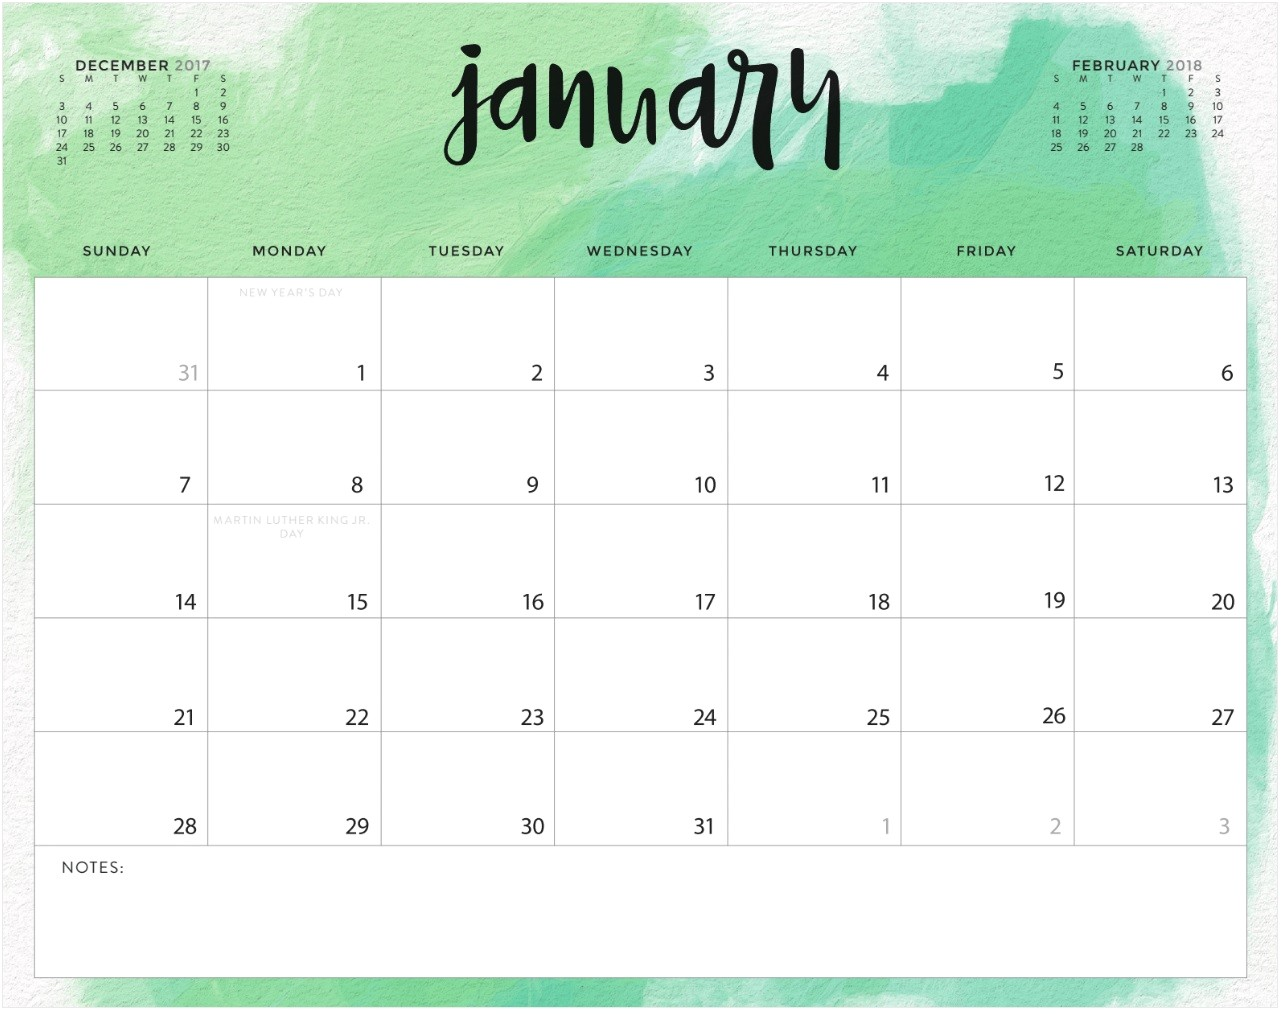 Calendar with Pictures Template January 2018 Calendar Excel Template Calendar 2018